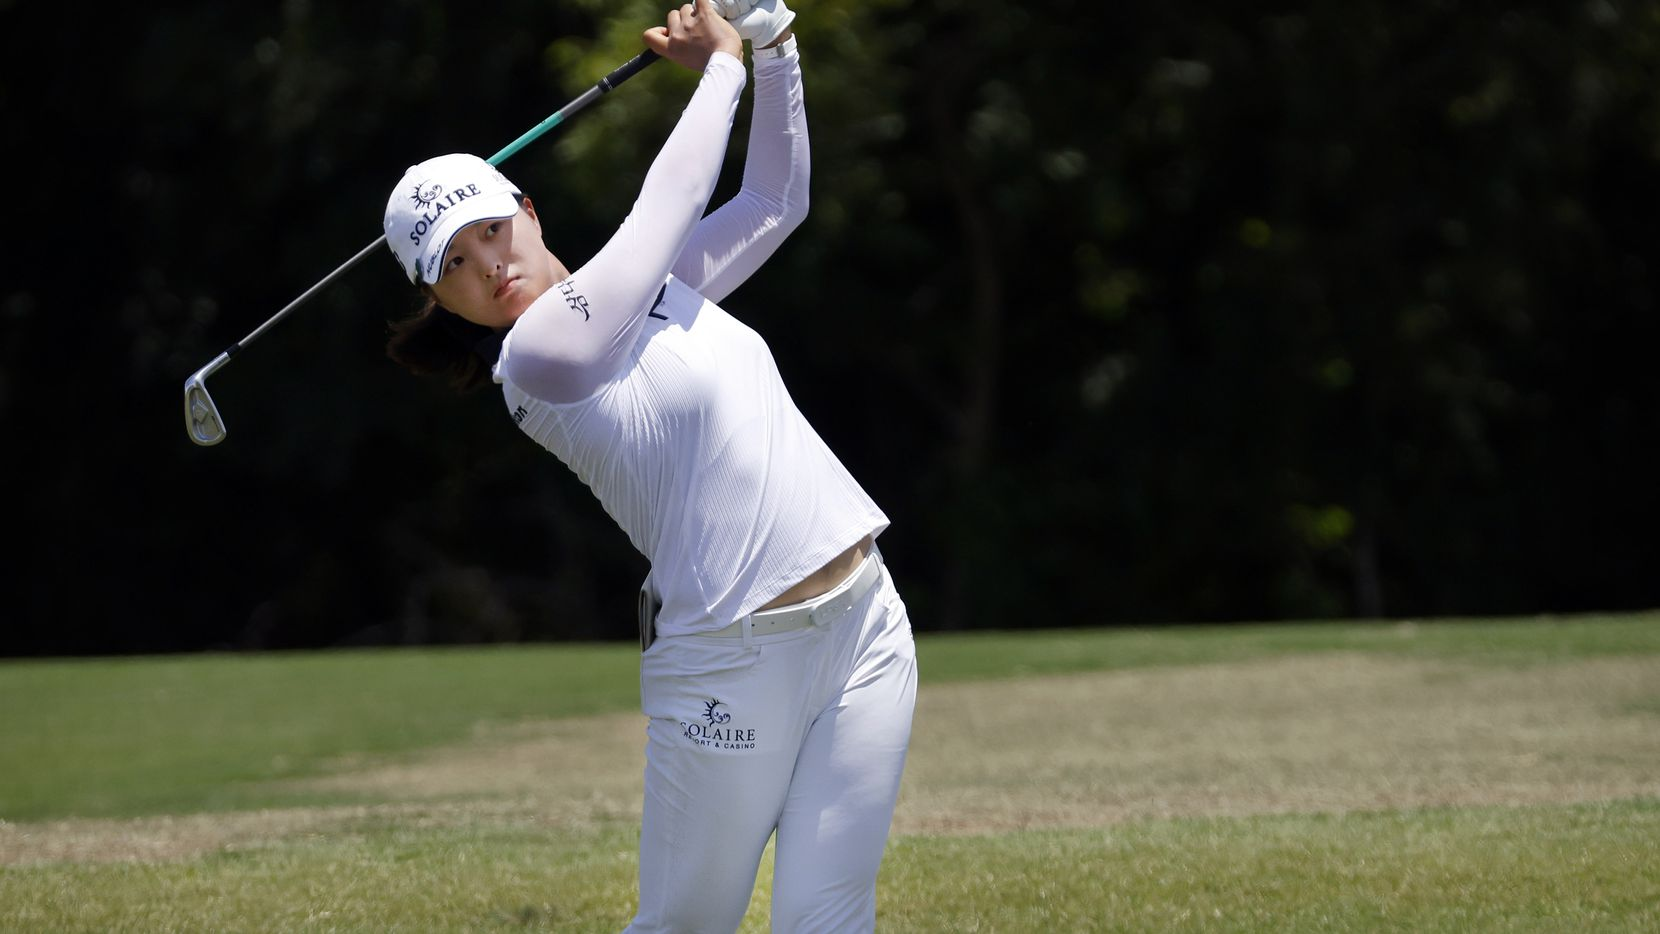 Professional golfer Jin Young Ko hits her approach shot on No. 9 during the opening round of the LPGA VOA Classic at the Old American Golf Club in The Colony, Texas, Thursday, July 1, 2021. She finished parred the hole and finished  8-under on the day. (Tom Fox/The Dallas Morning News)